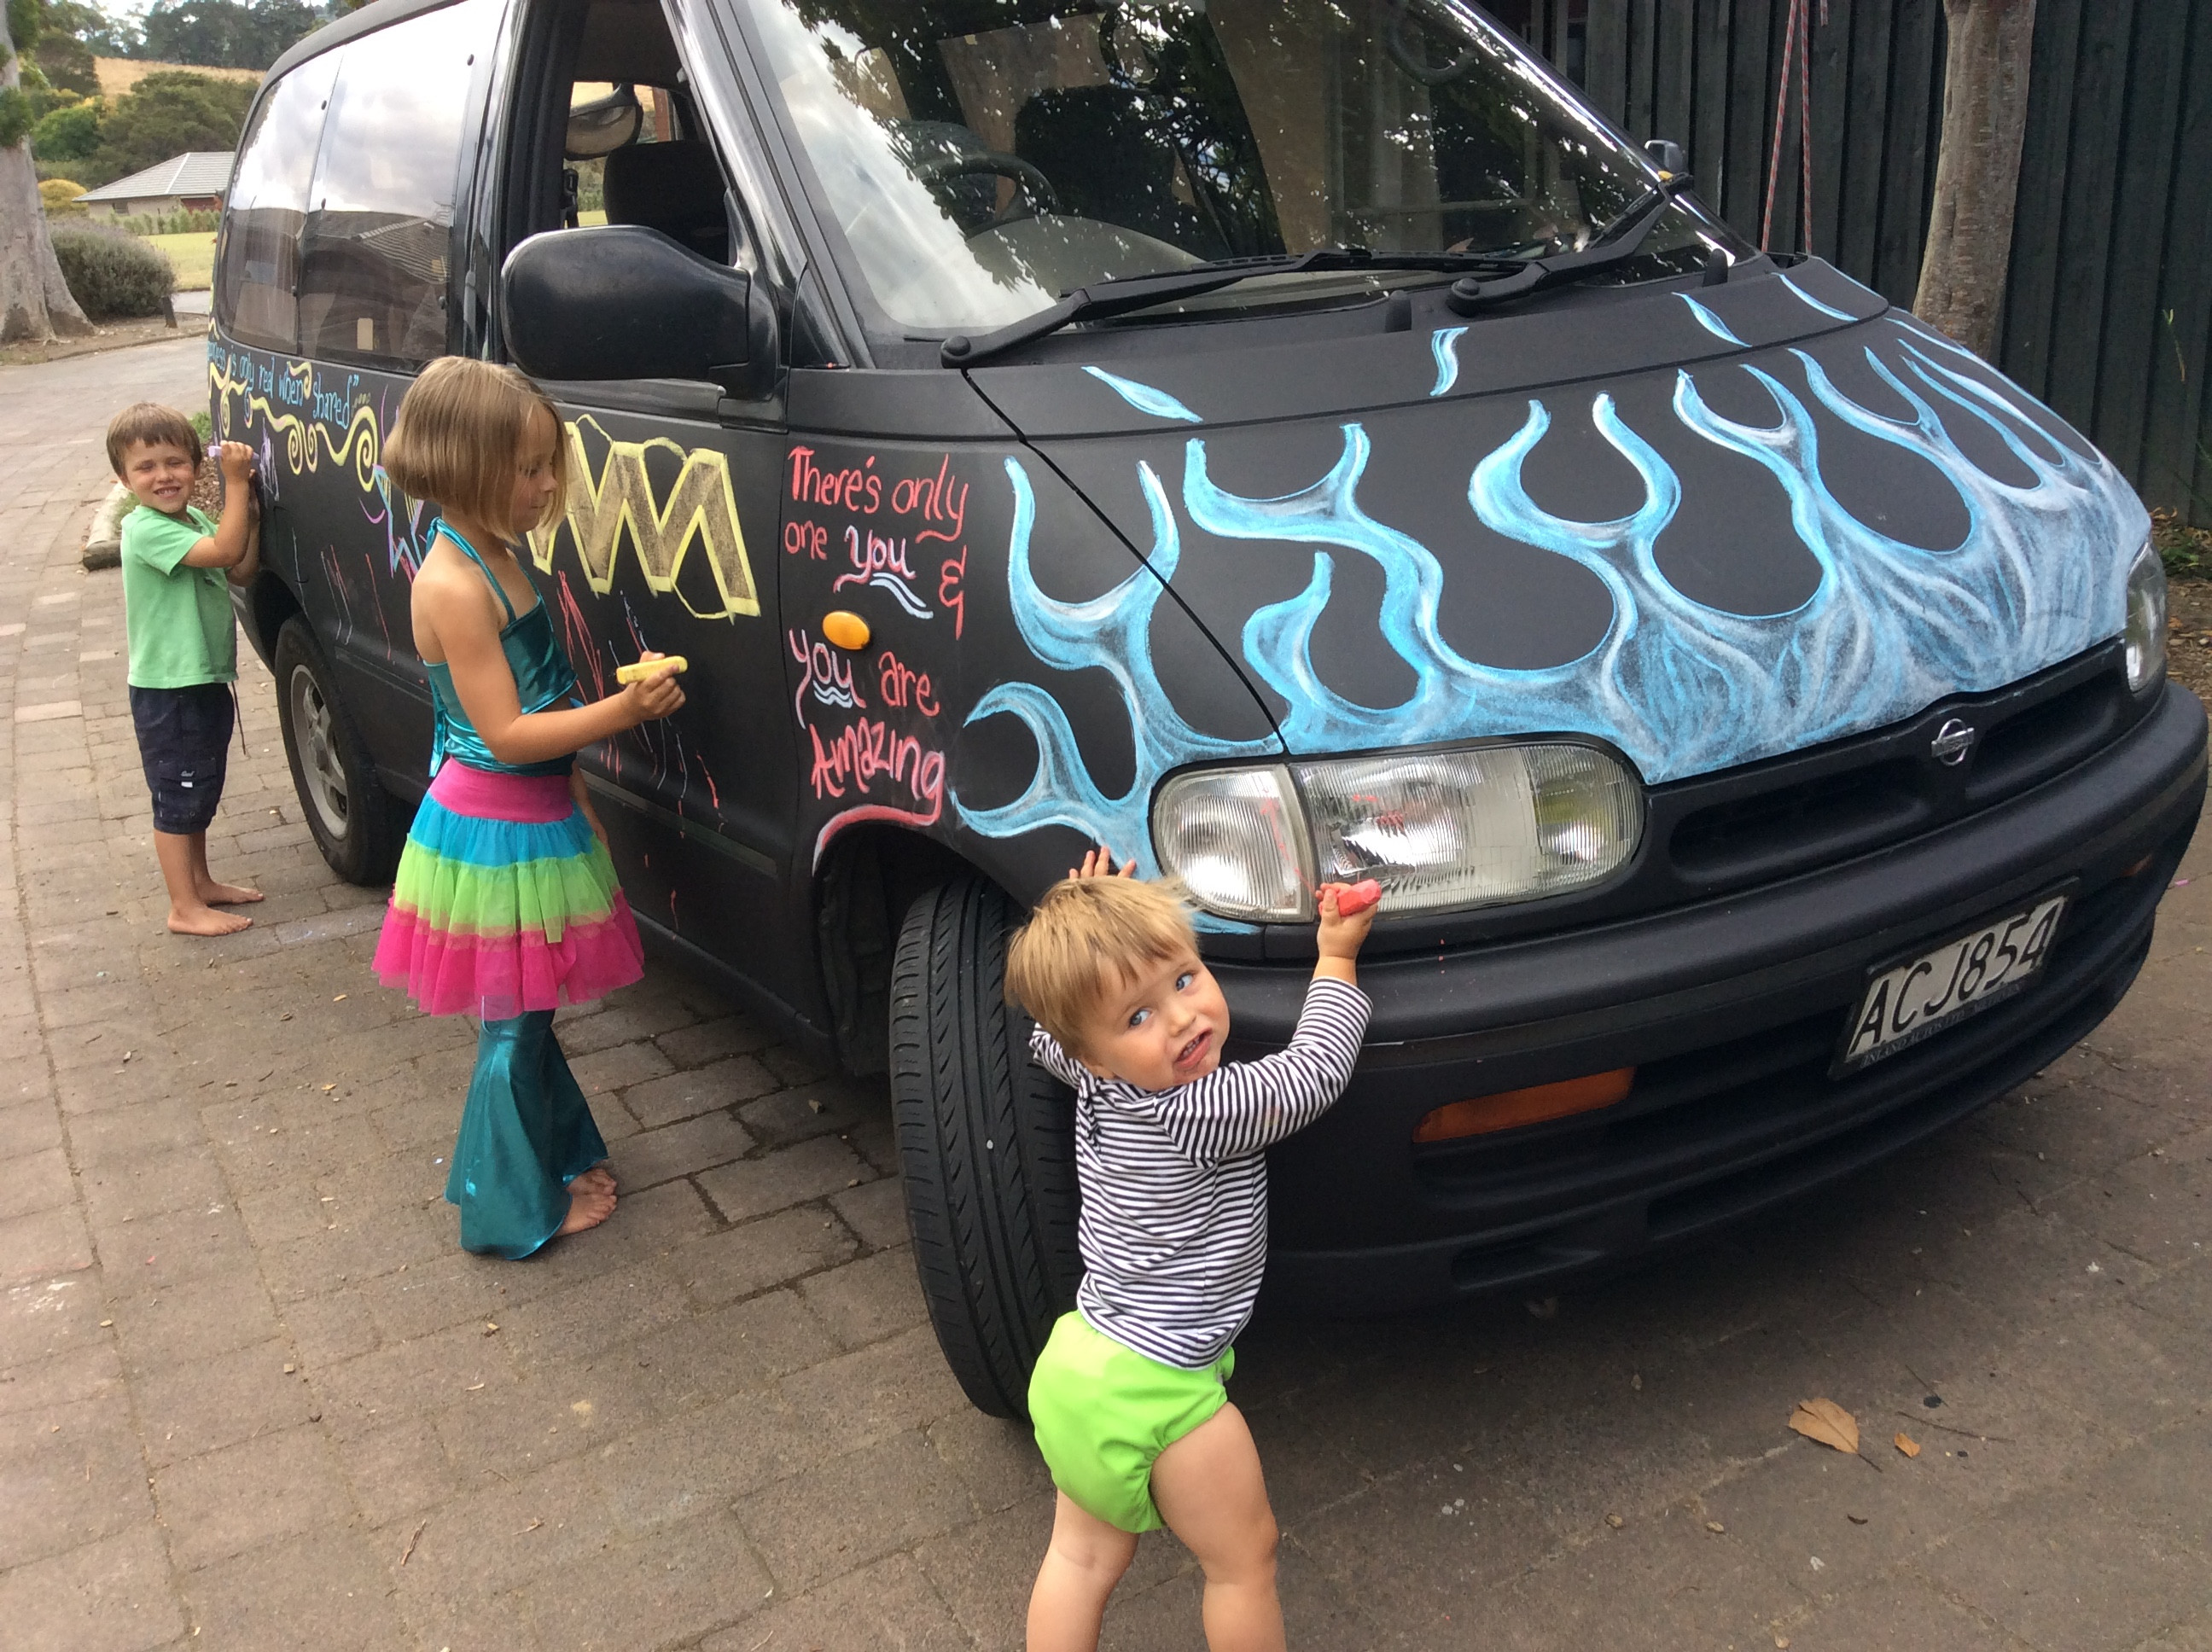 Best ideas about DIY Car Paint Jobs . Save or Pin Thrifty Fun DIY Chalkboard Paint Car Job Now.